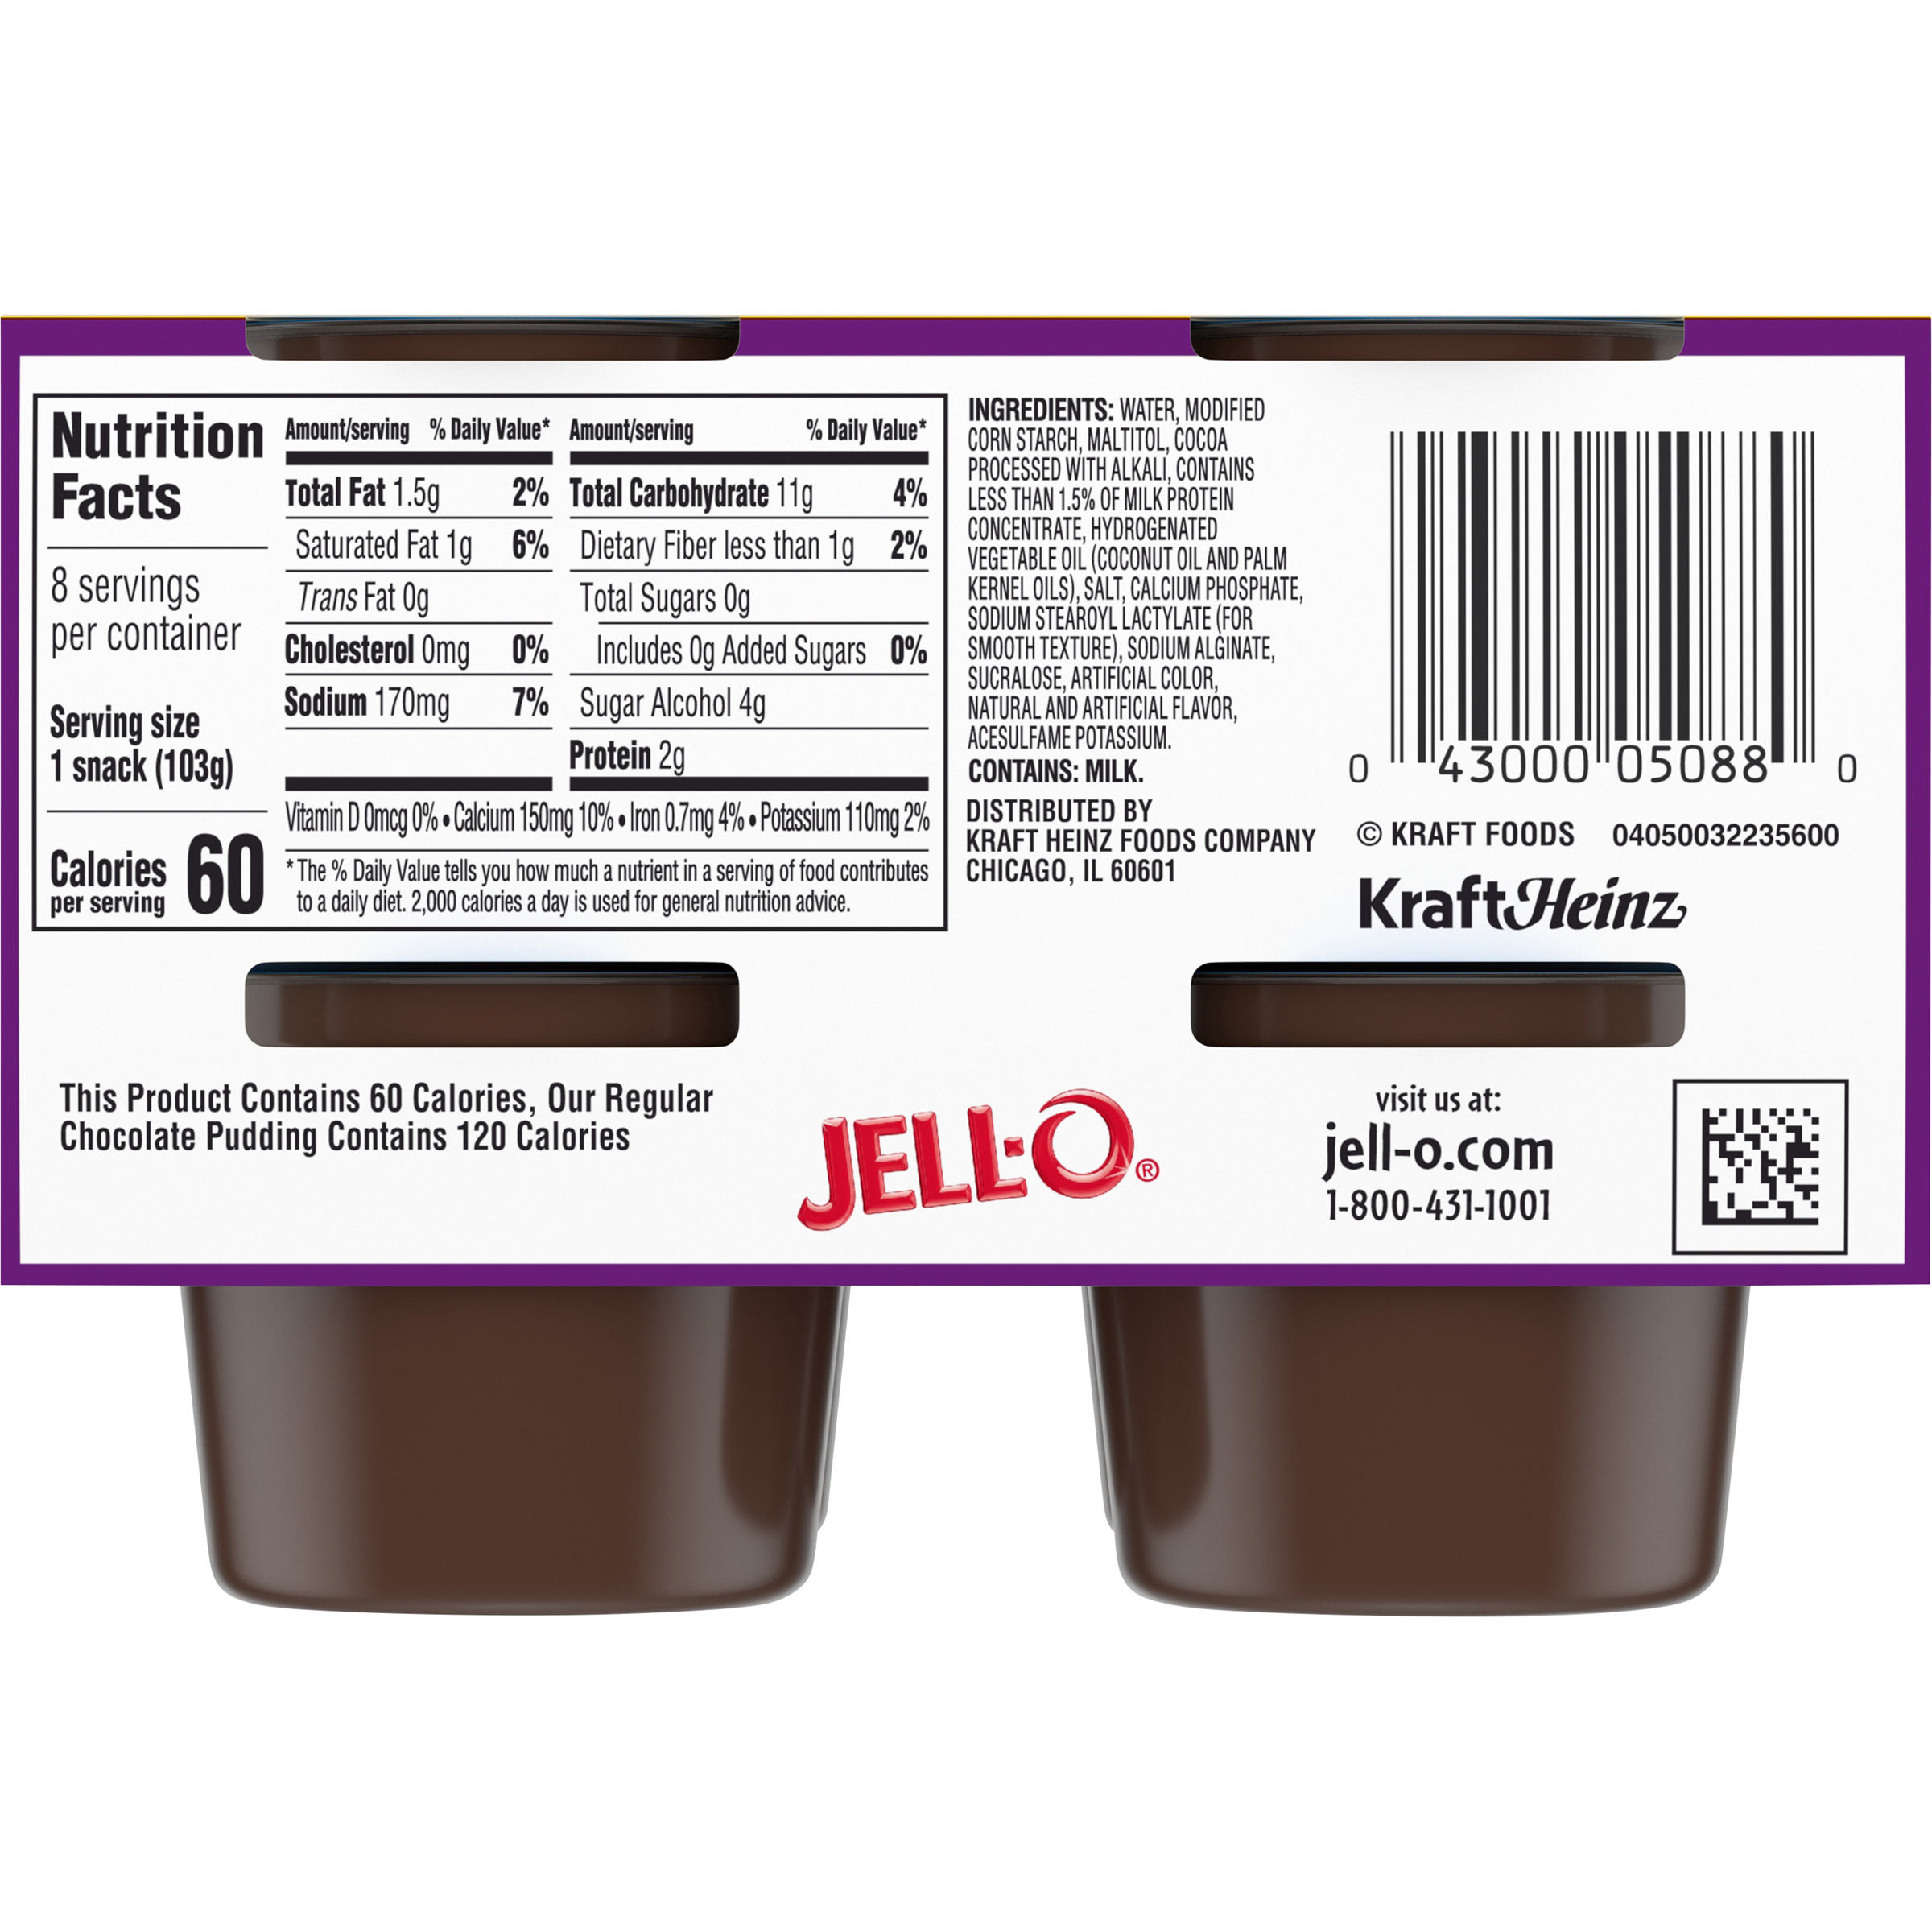 Jello Sugar Free Pudding Cups Nutrition Facts Nutritionwalls